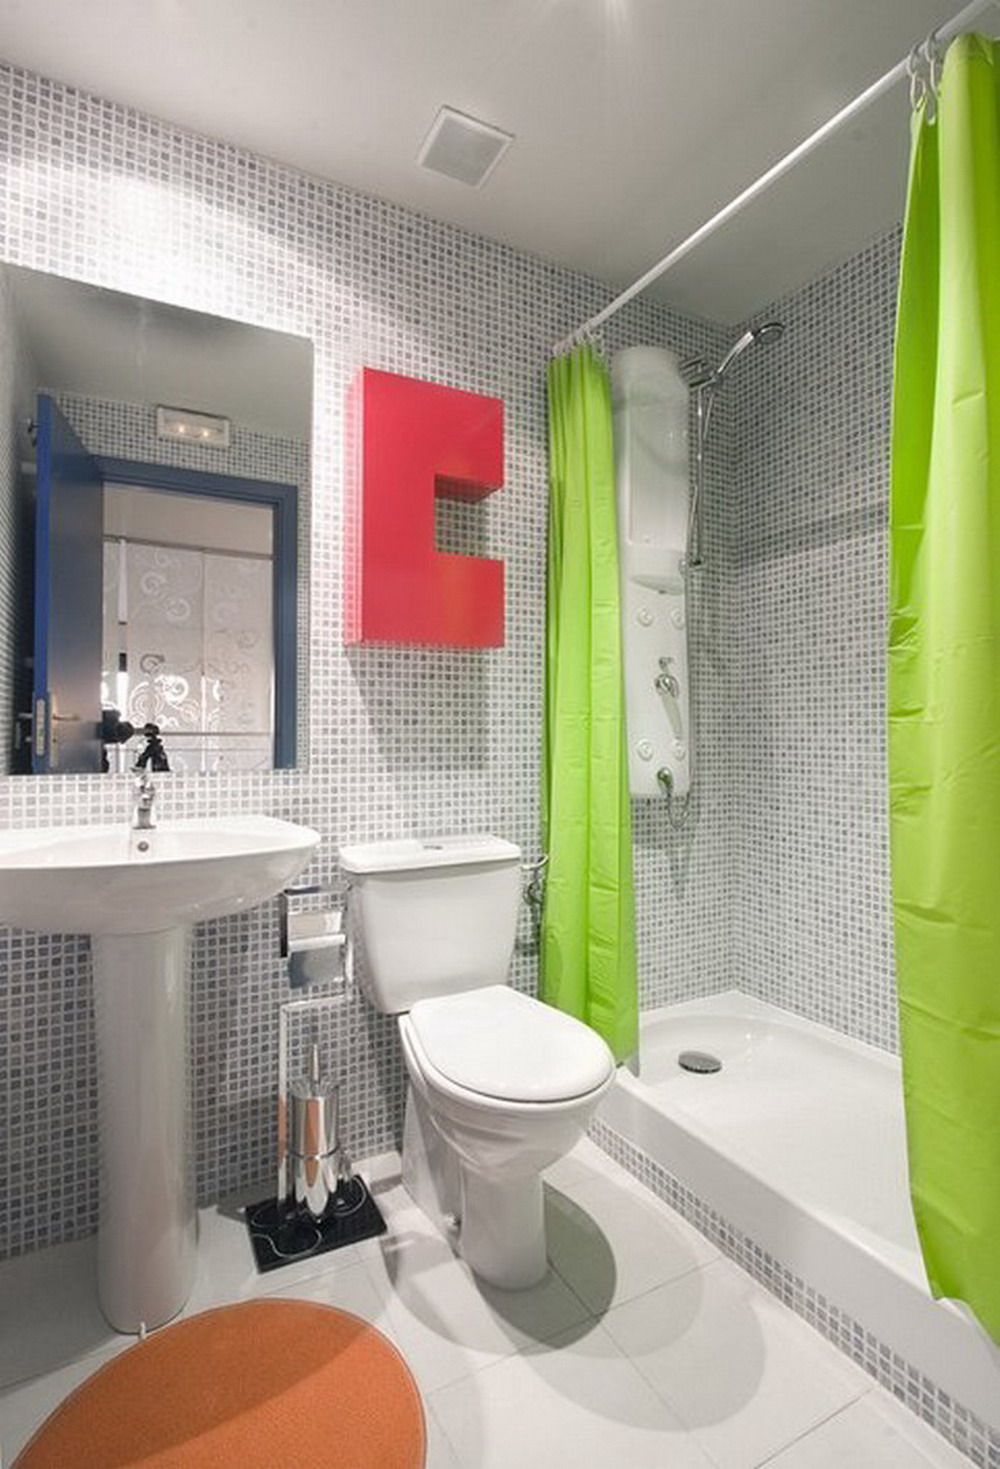 Home Design and Interior Design Gallery of Bathroom Tile Design ...